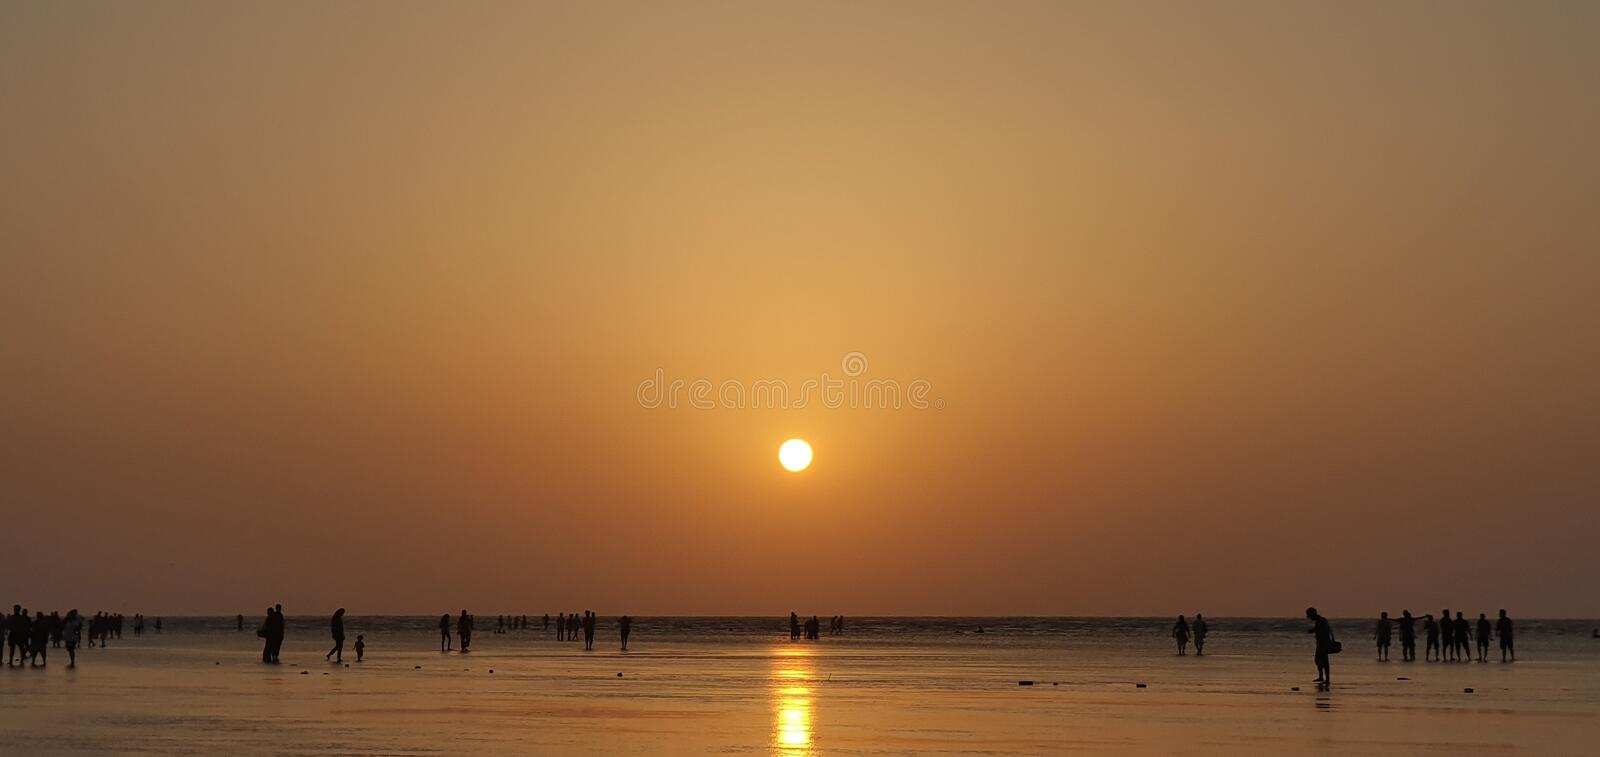 Spiaggia di Jampore, daman, Goudjerate, India immagine stock